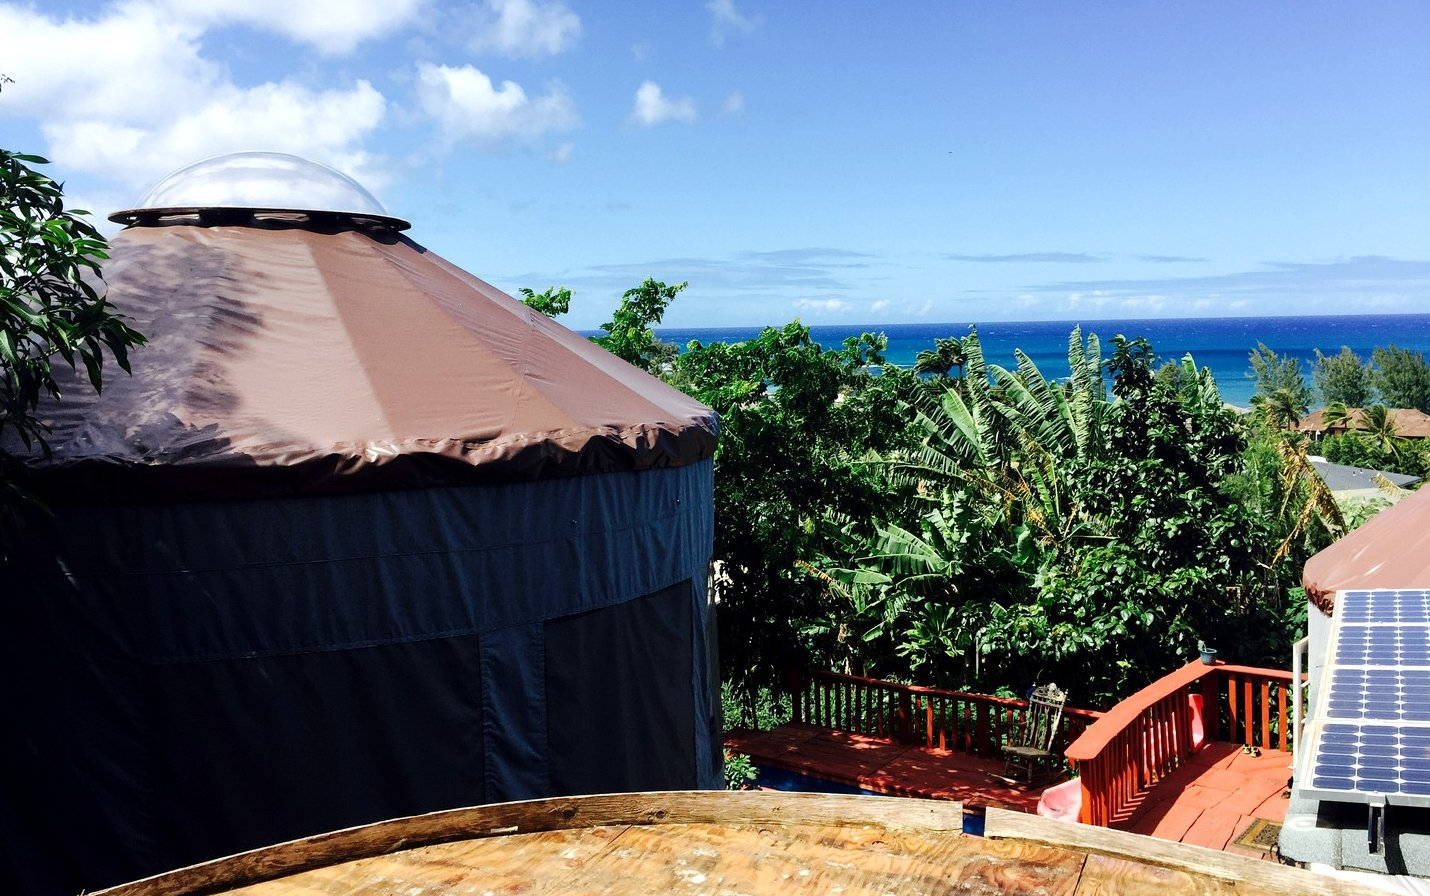 Photo 6 of 10 in 9 Yurt Vacation Rentals For the Modern Alternative Camper